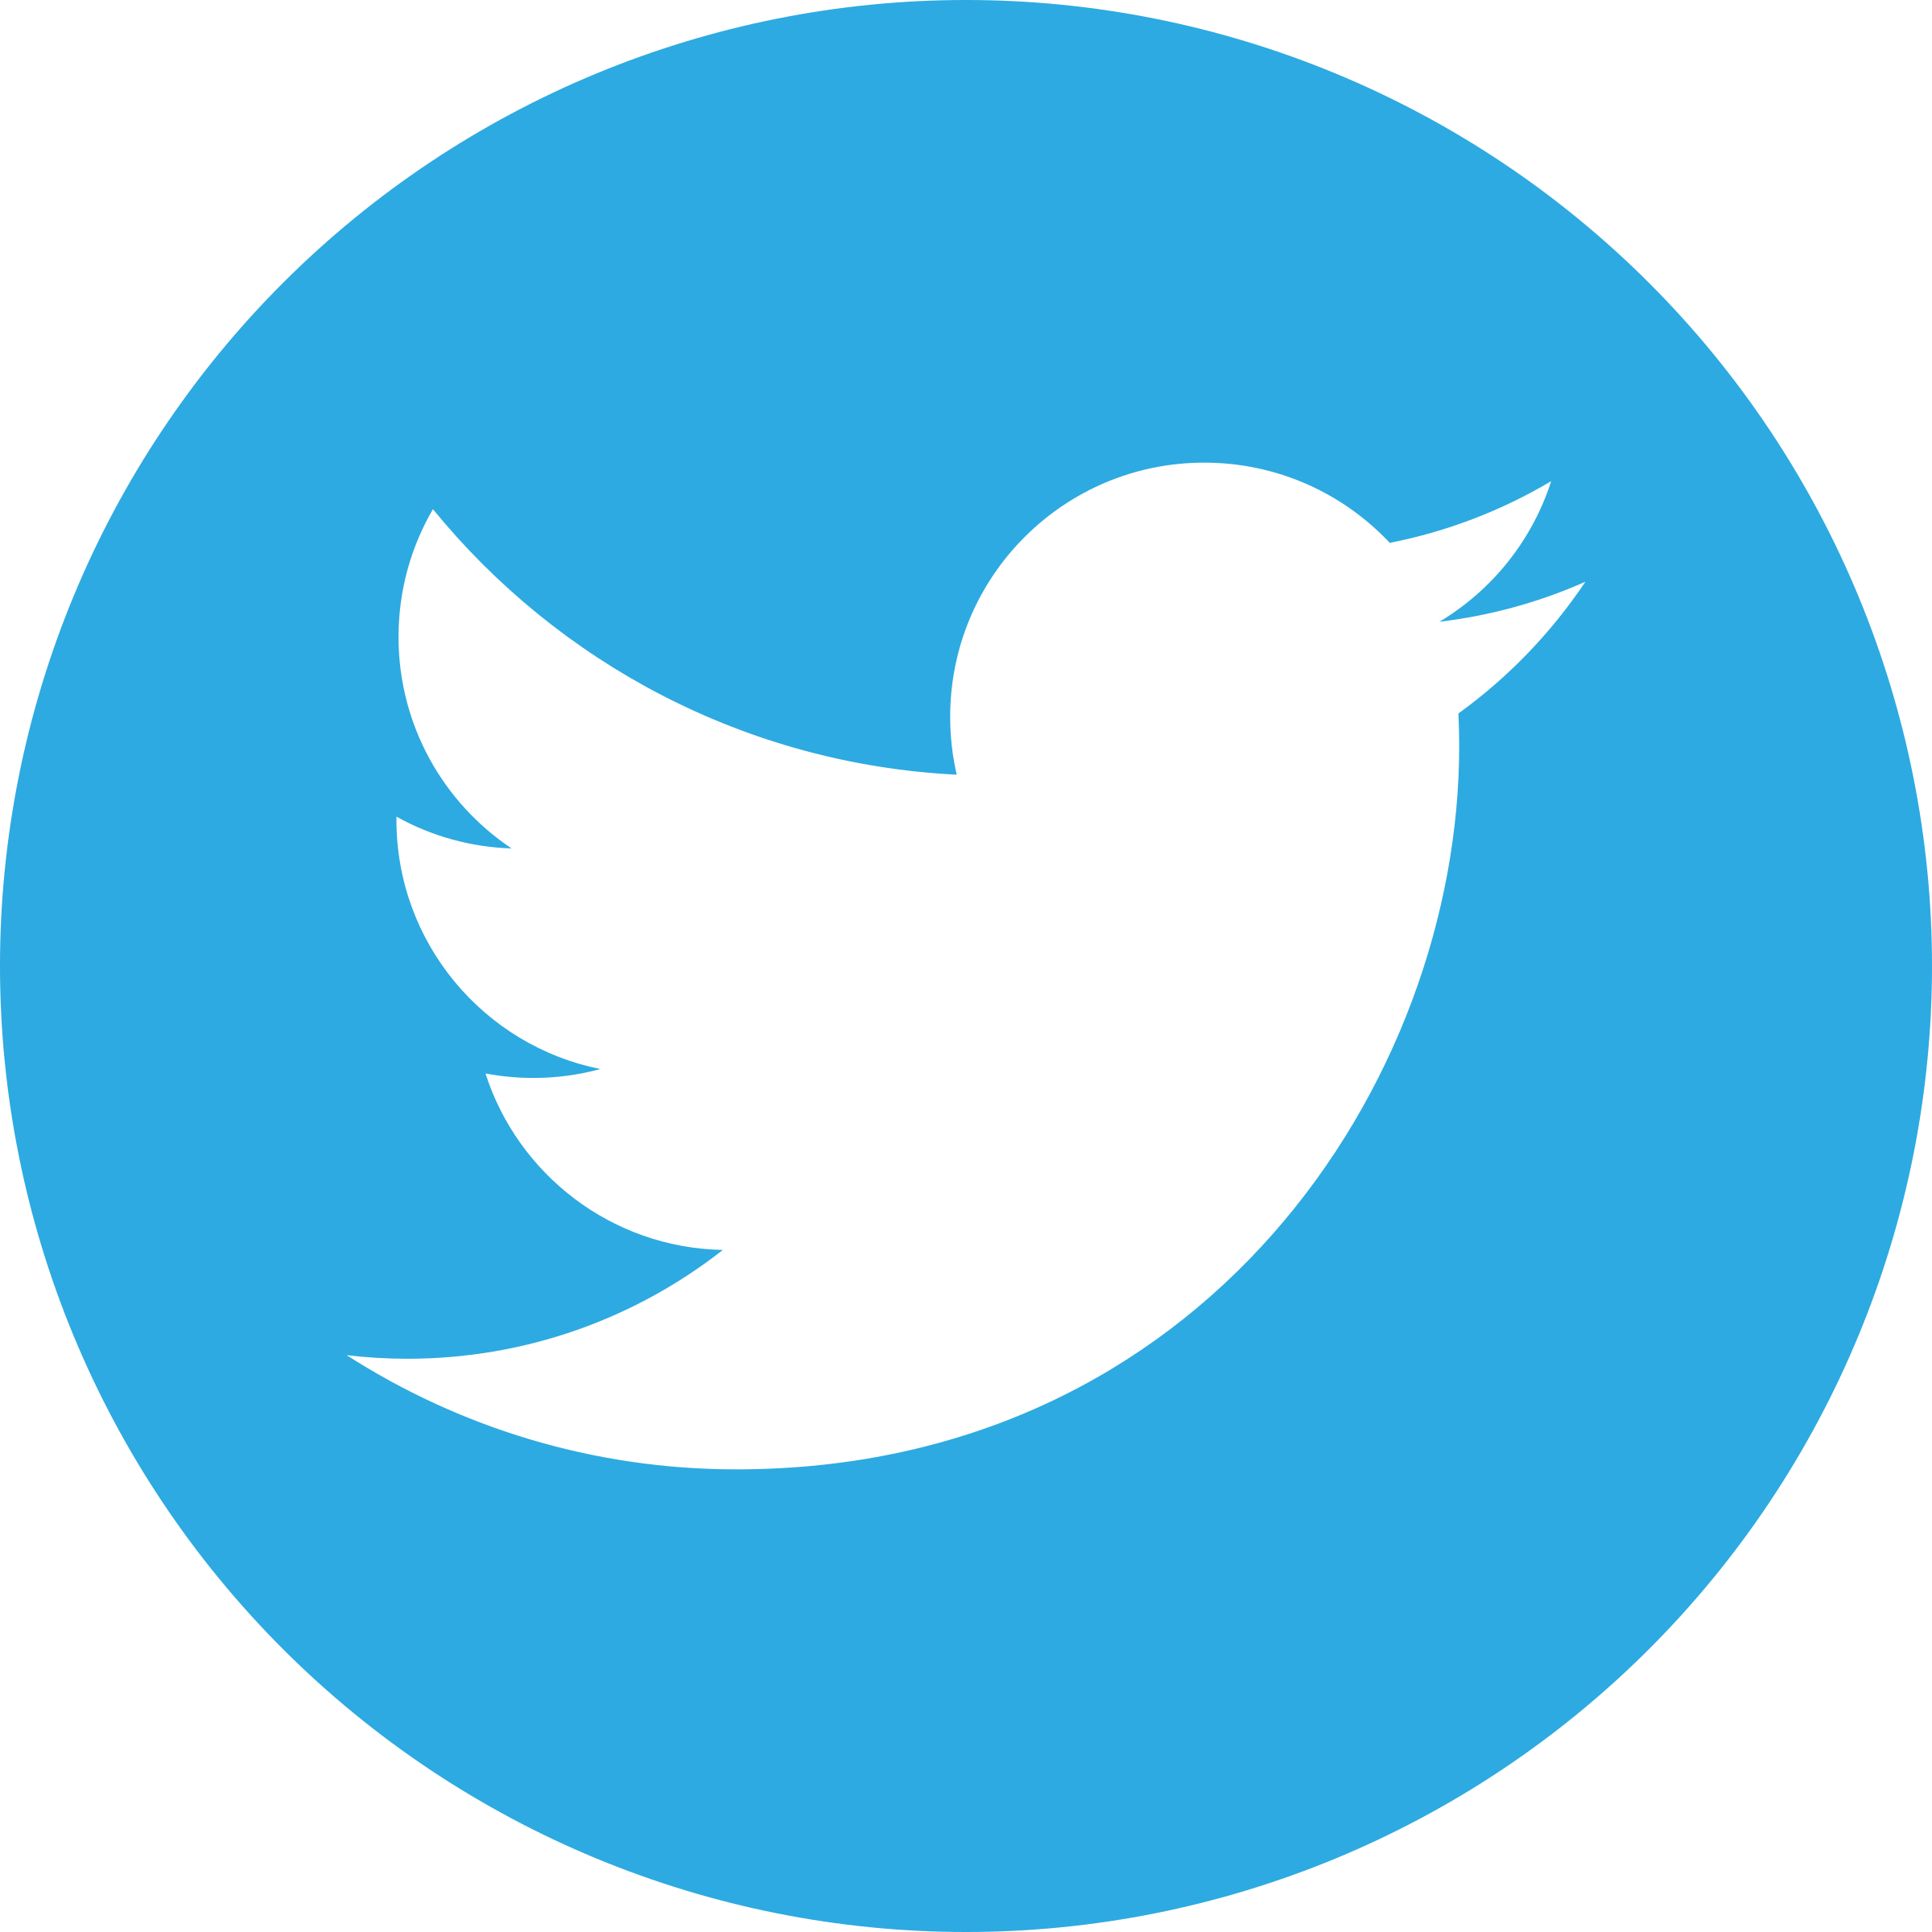 Twitter icon Logo PNG Transparent